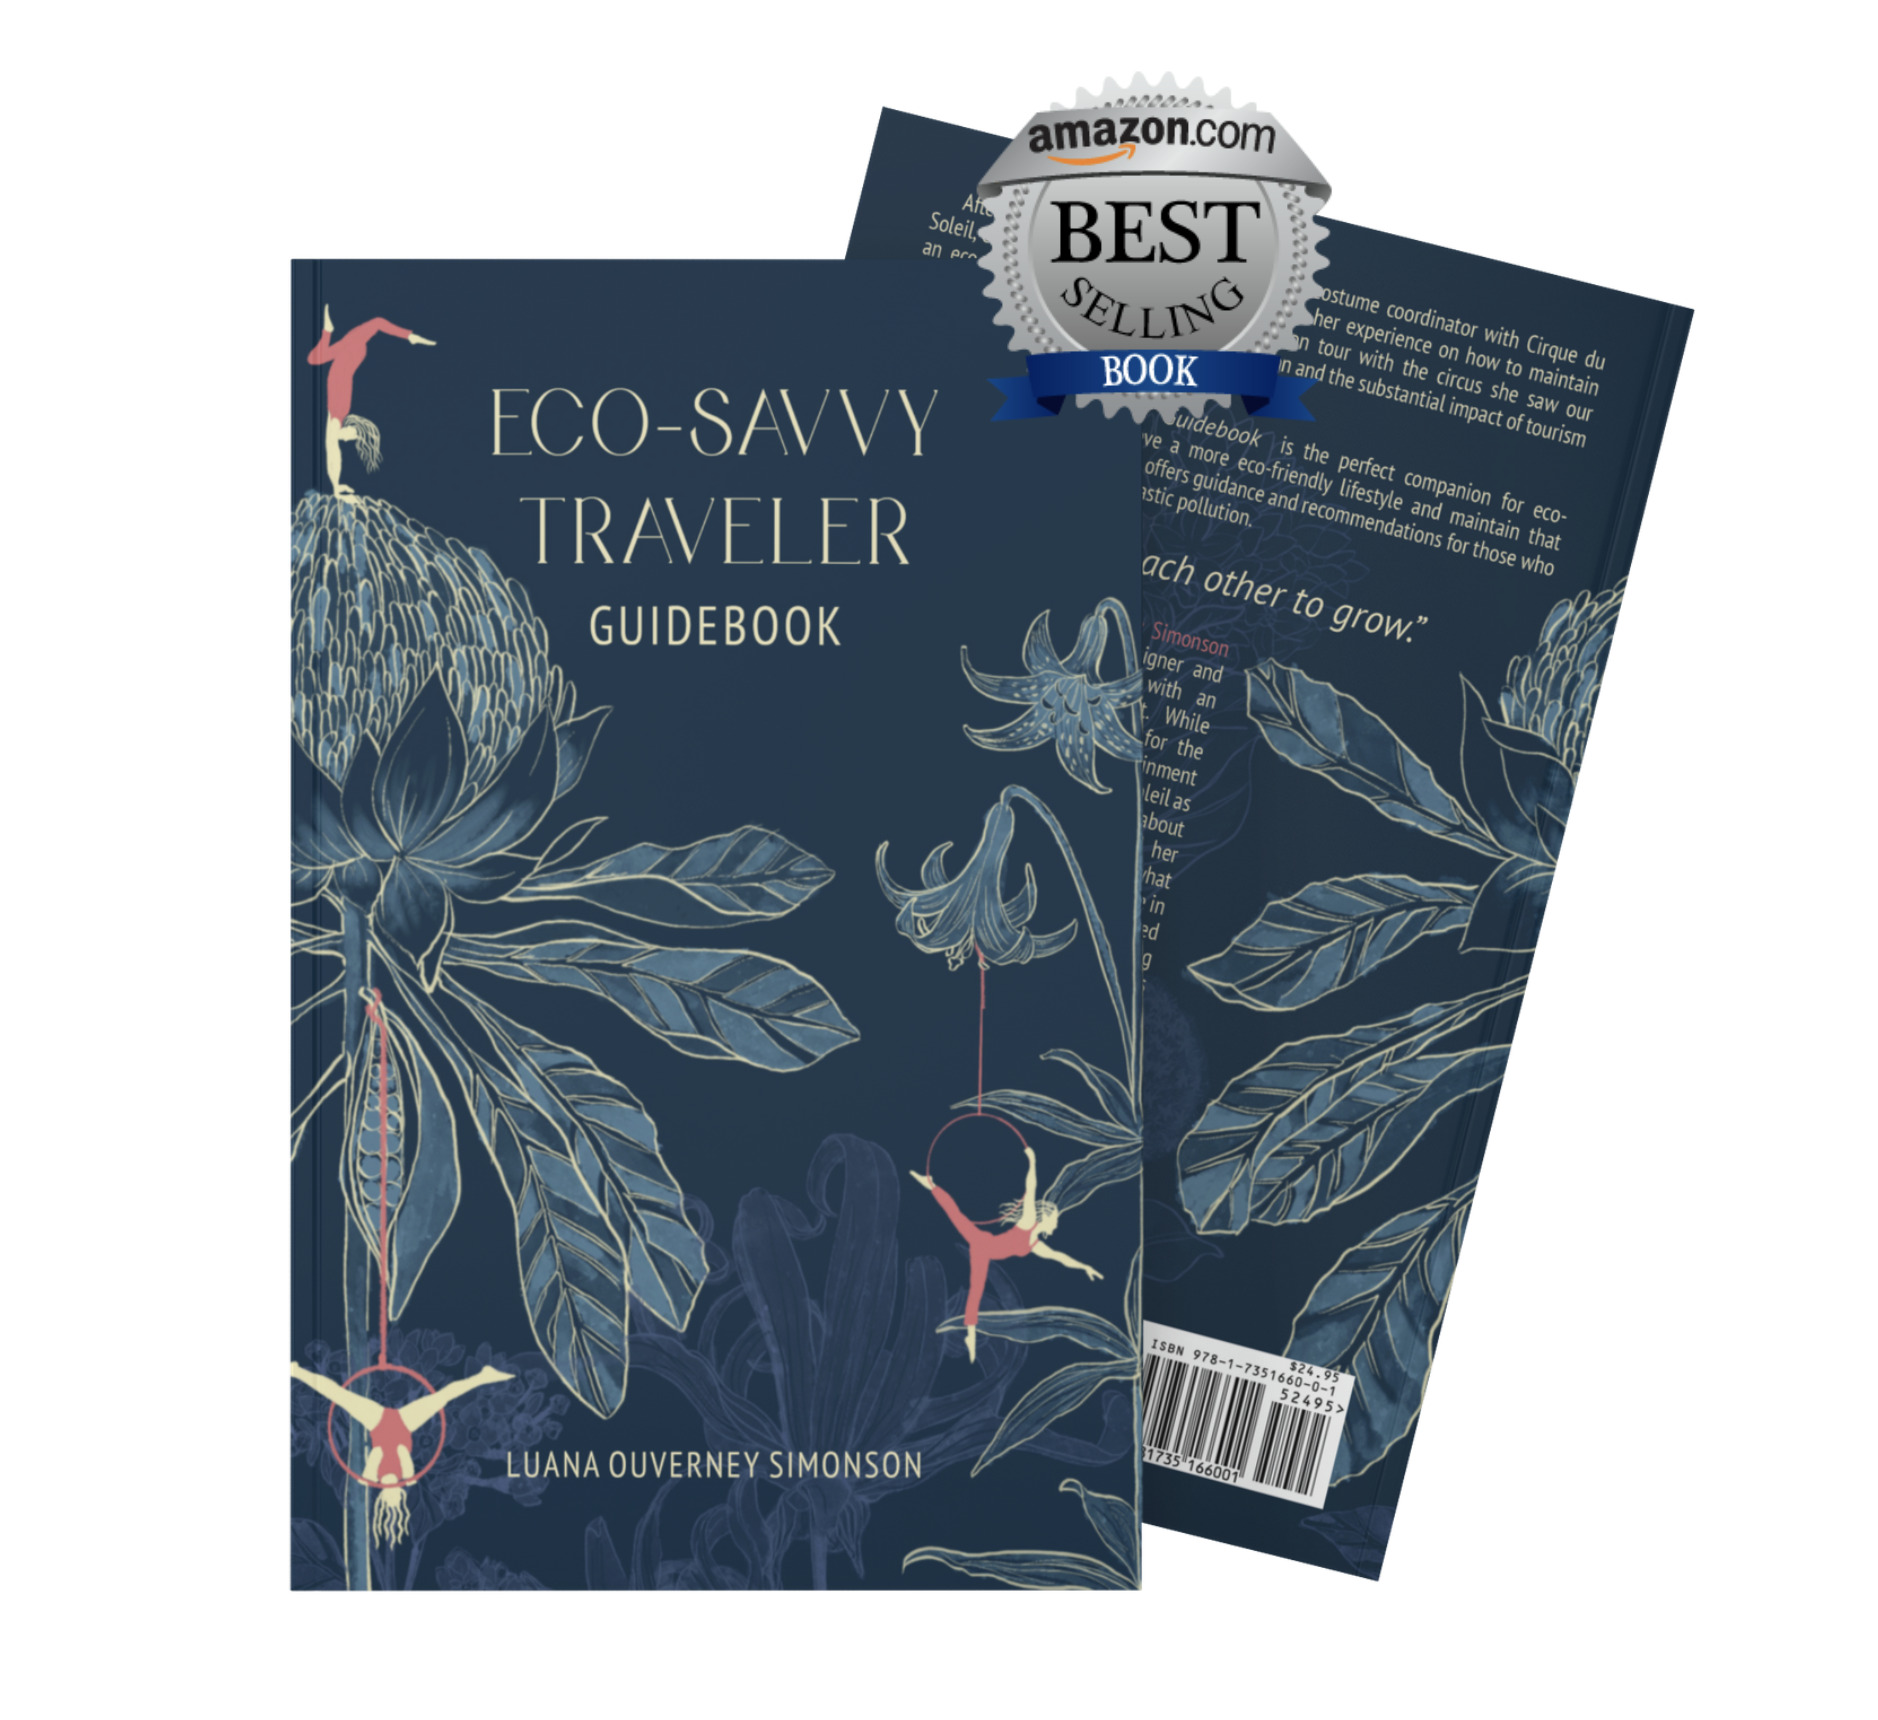 The Eco-Savvy Traveler Guidebook Cover